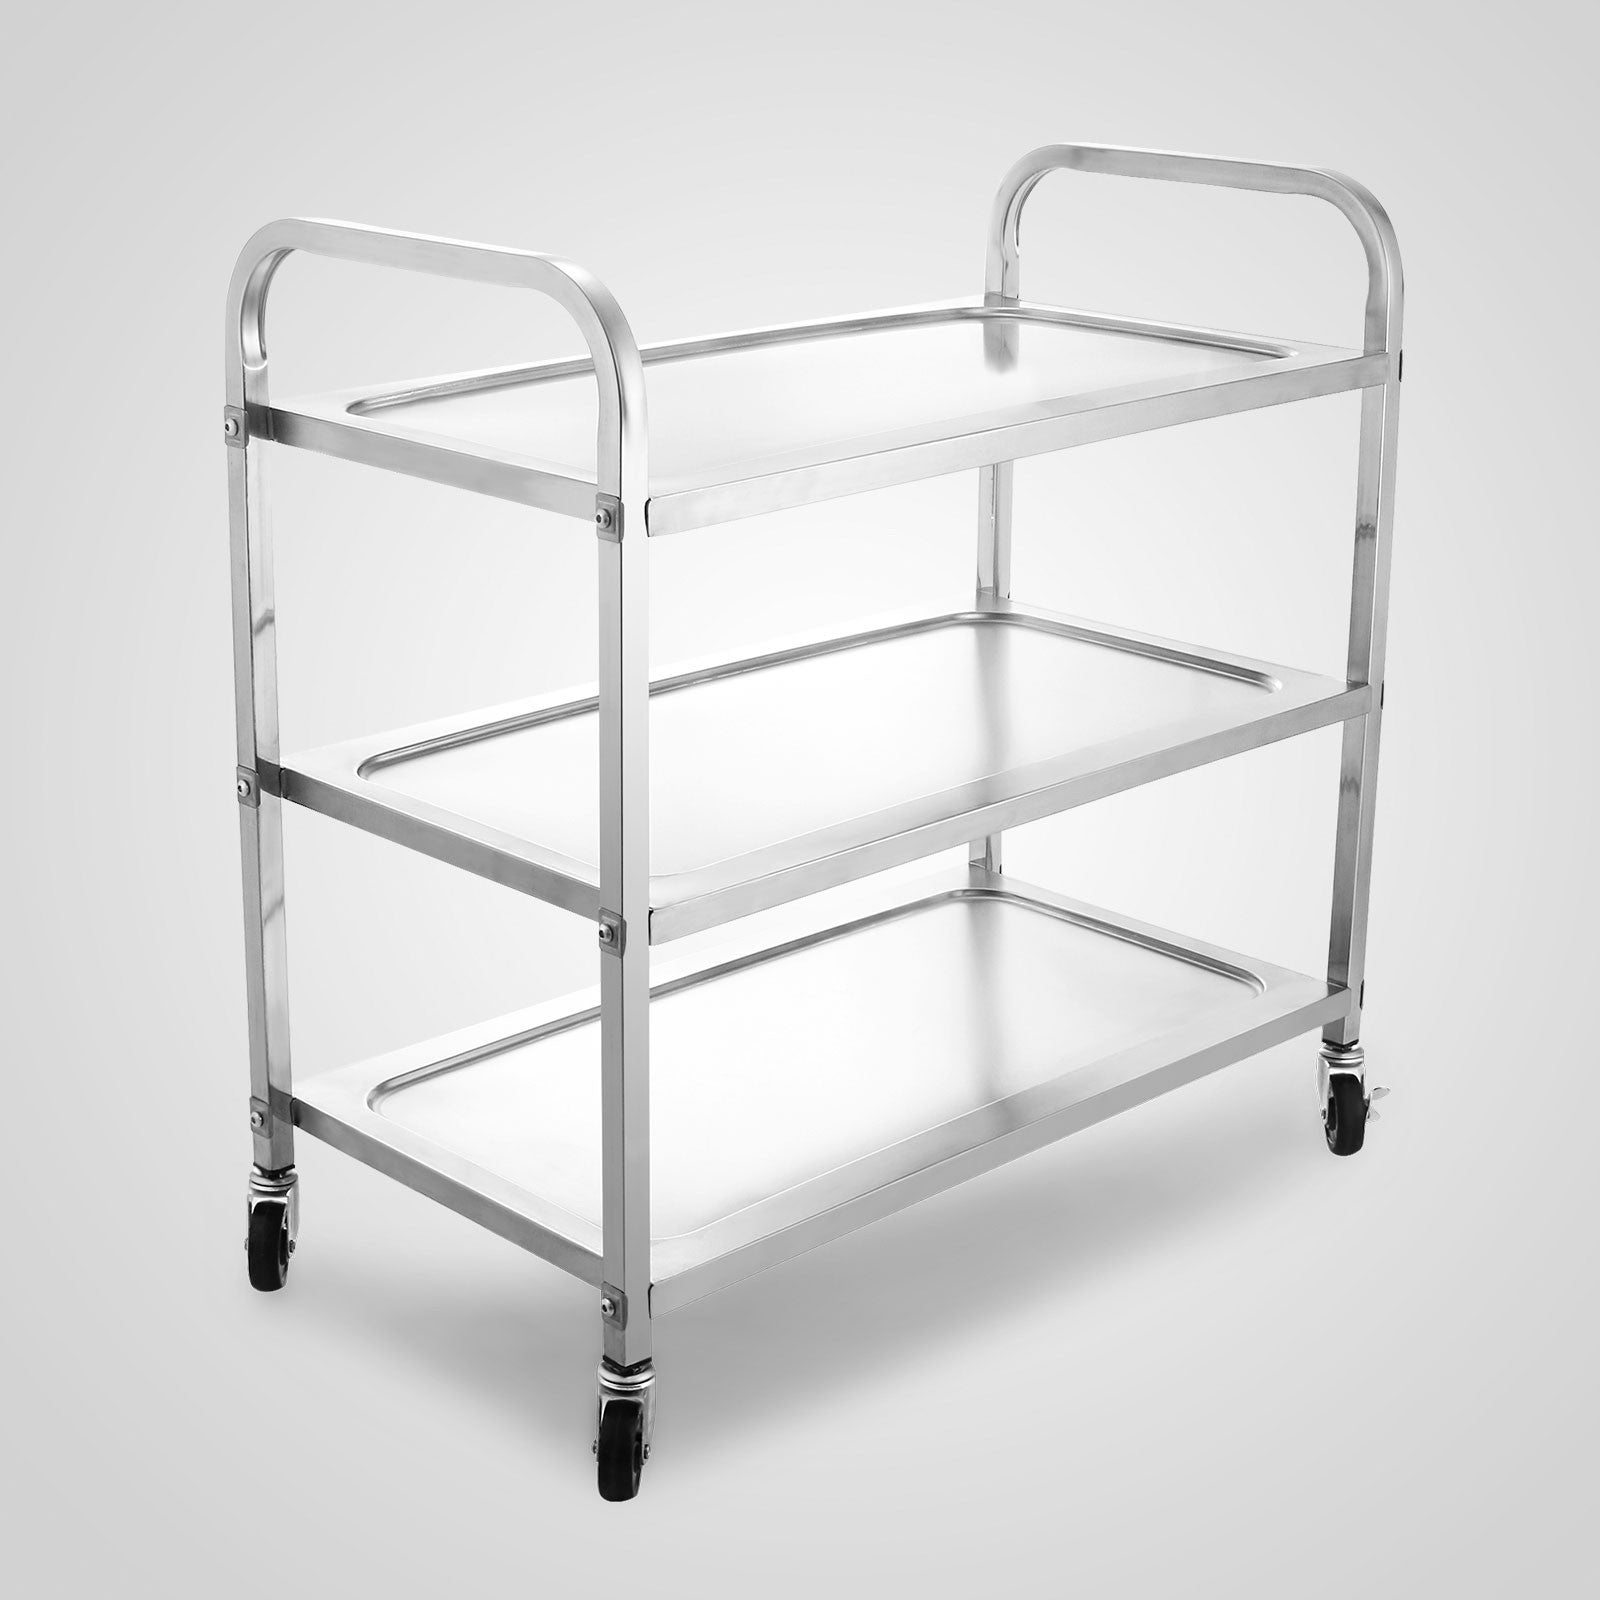 3 Shelf Stainless Steel Commercial Bus Cart Kitchen Food Serving Rolling Cart